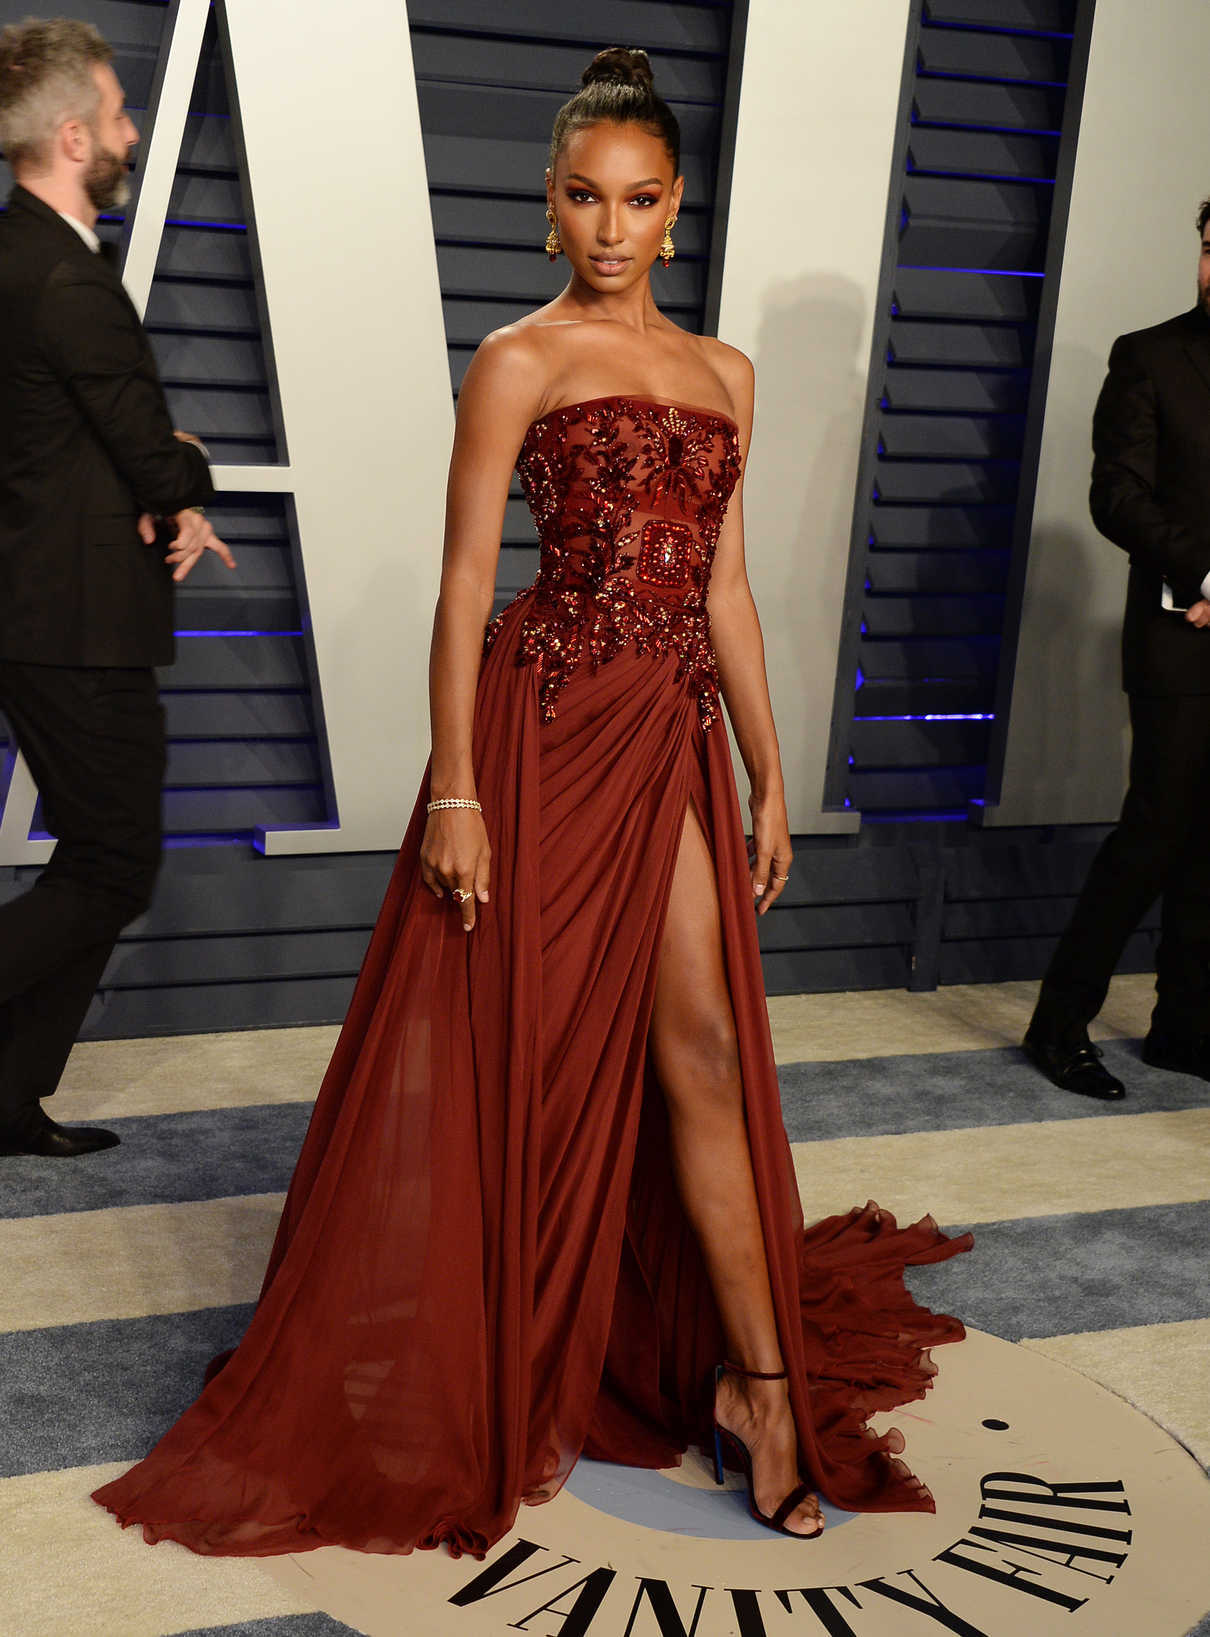 Jasmine Tookes Attends 2019 Vanity Fair Oscar Party In Beverly Hills 02 24 2019 3 Lacelebs Co